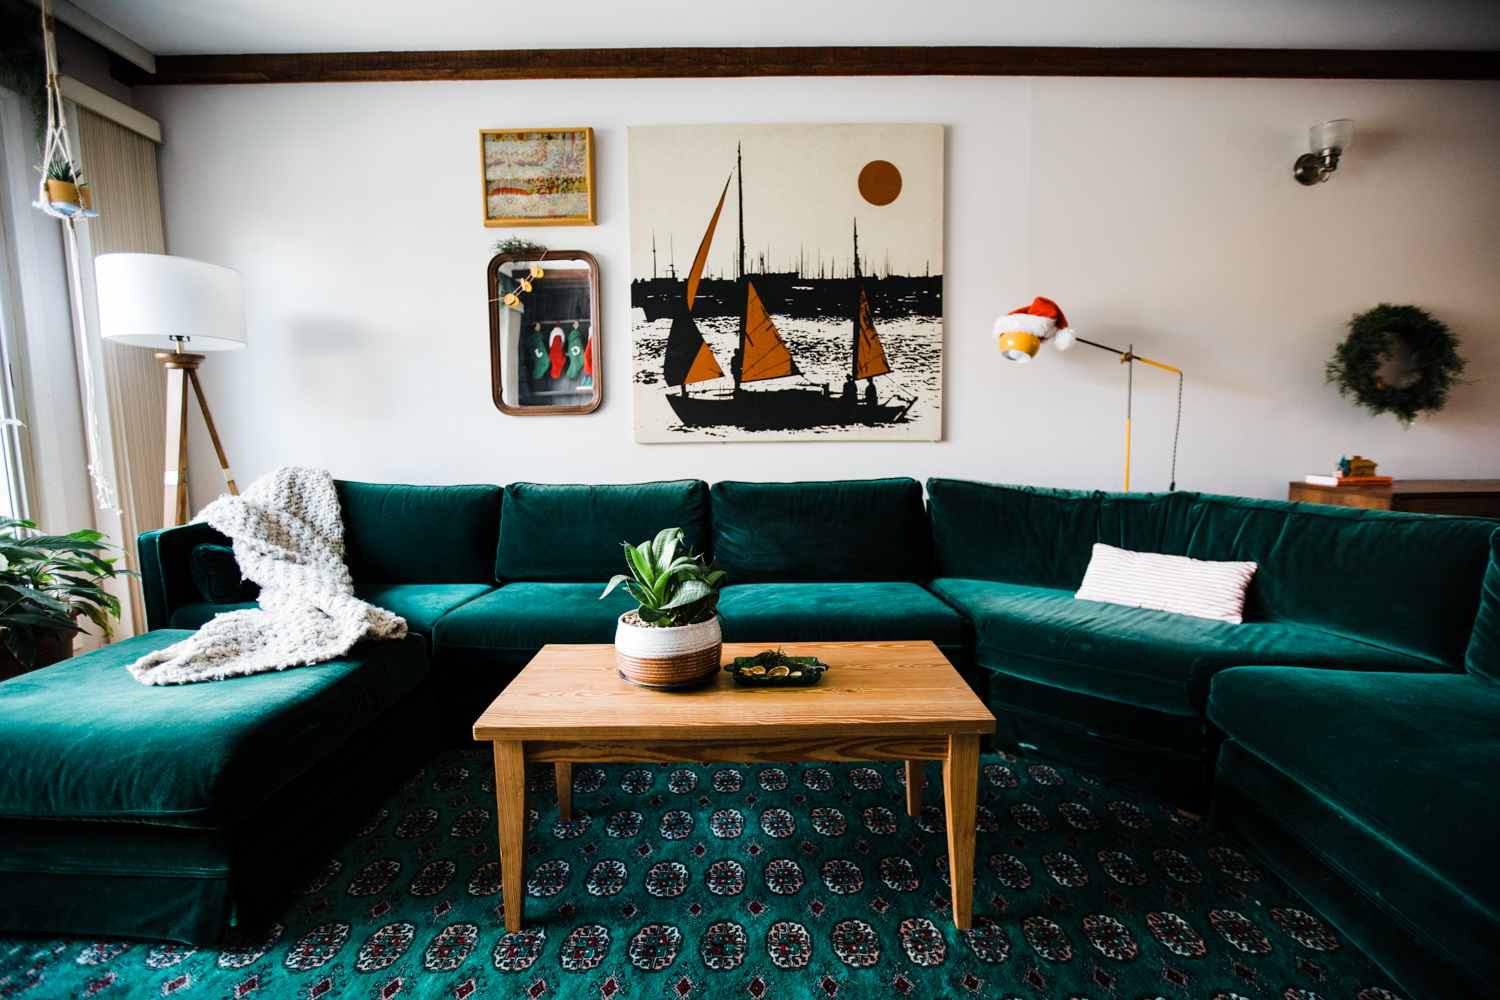 Now with my green rug + green sectional, Christmas decorating is a breeze.